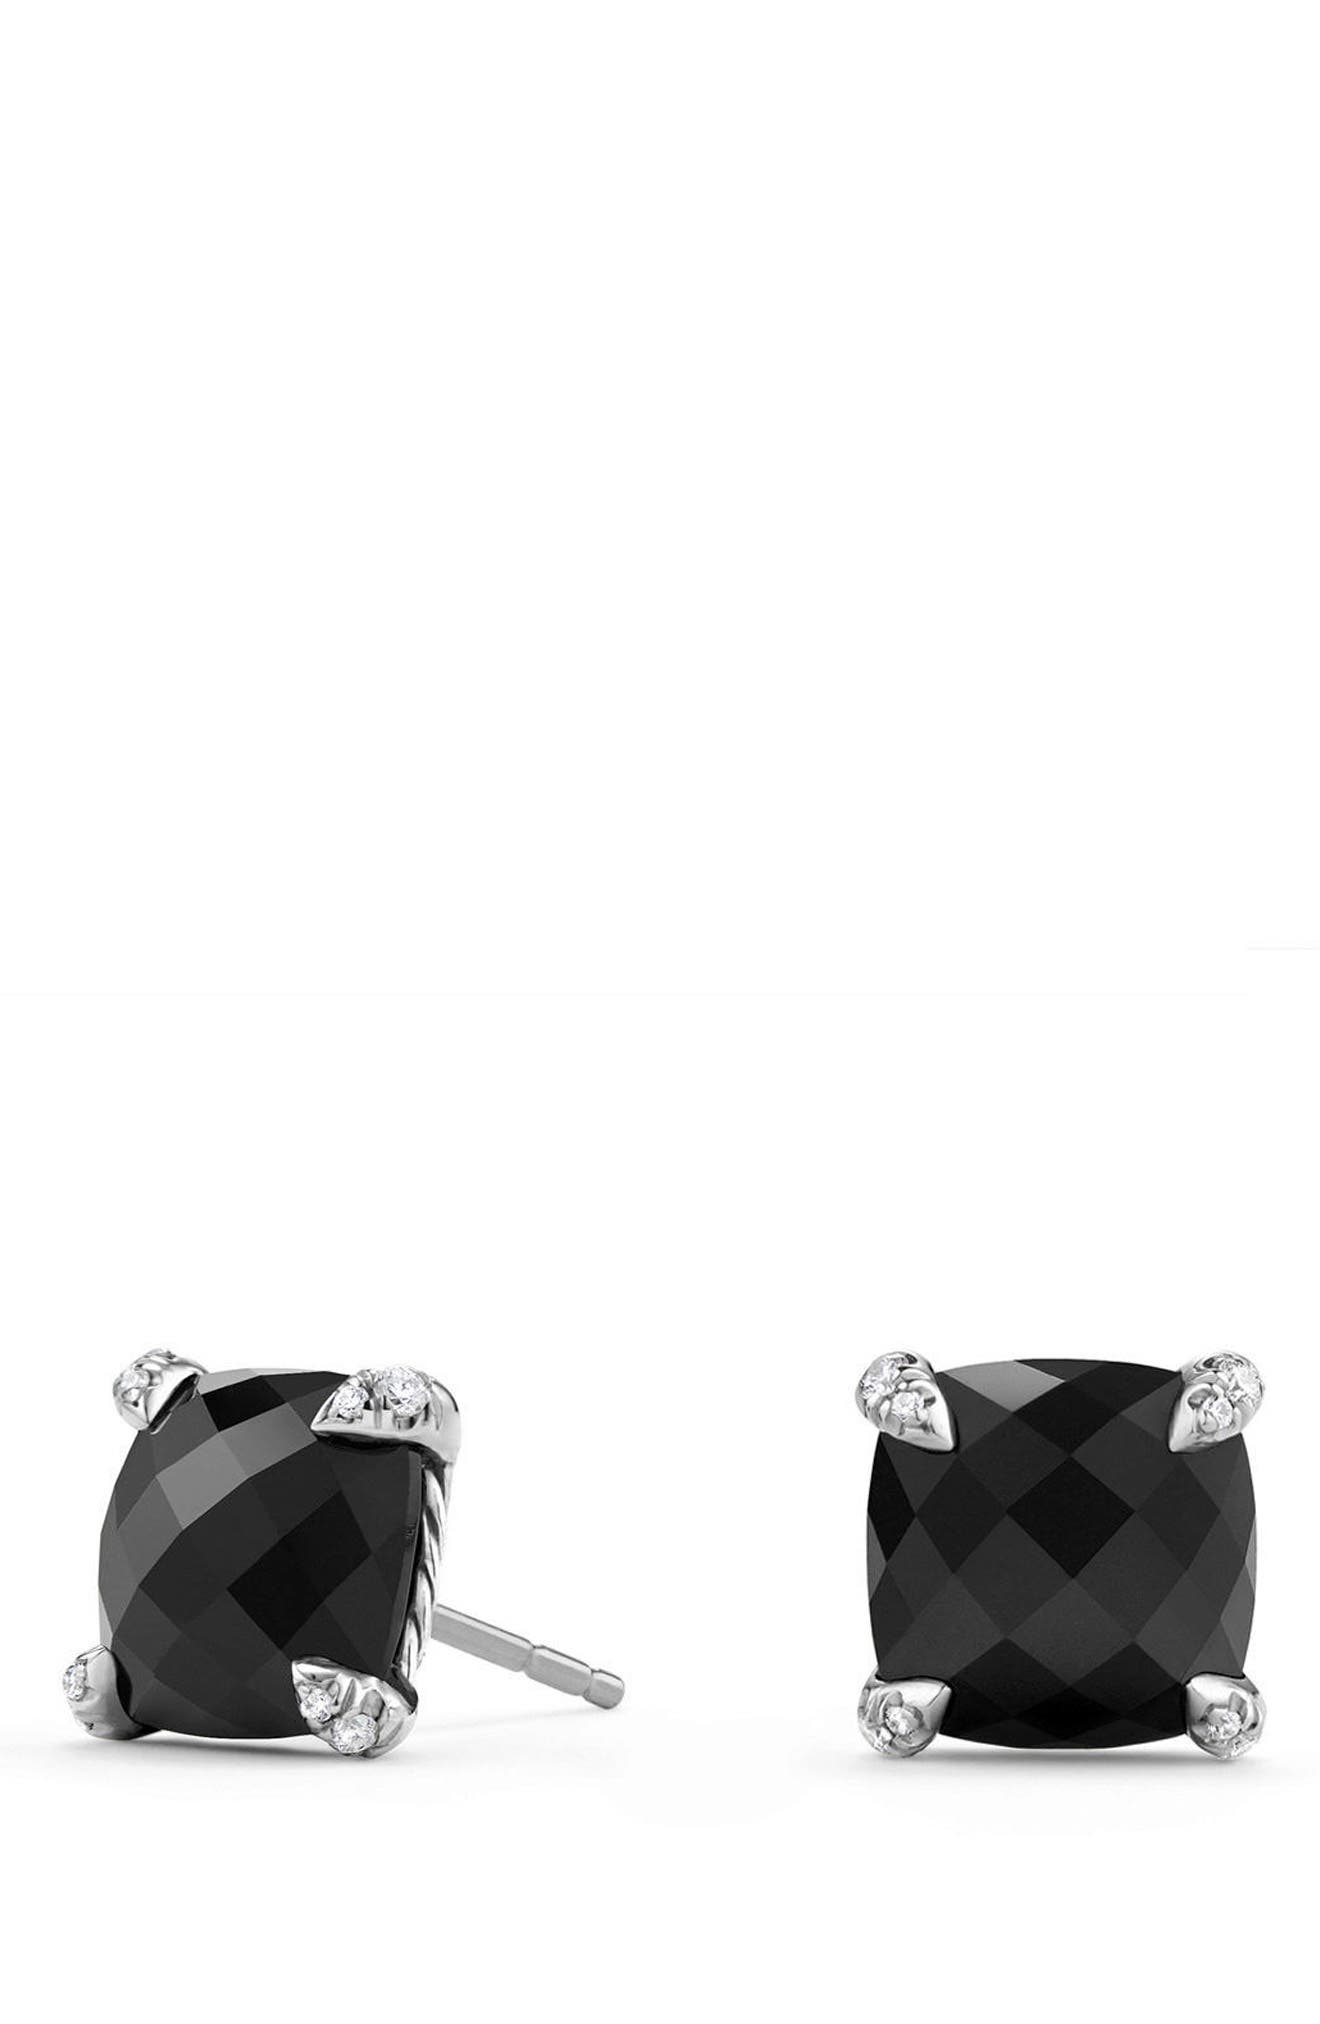 Châtelaine Earrings with Diamonds,                             Main thumbnail 1, color,                             Black Onyx